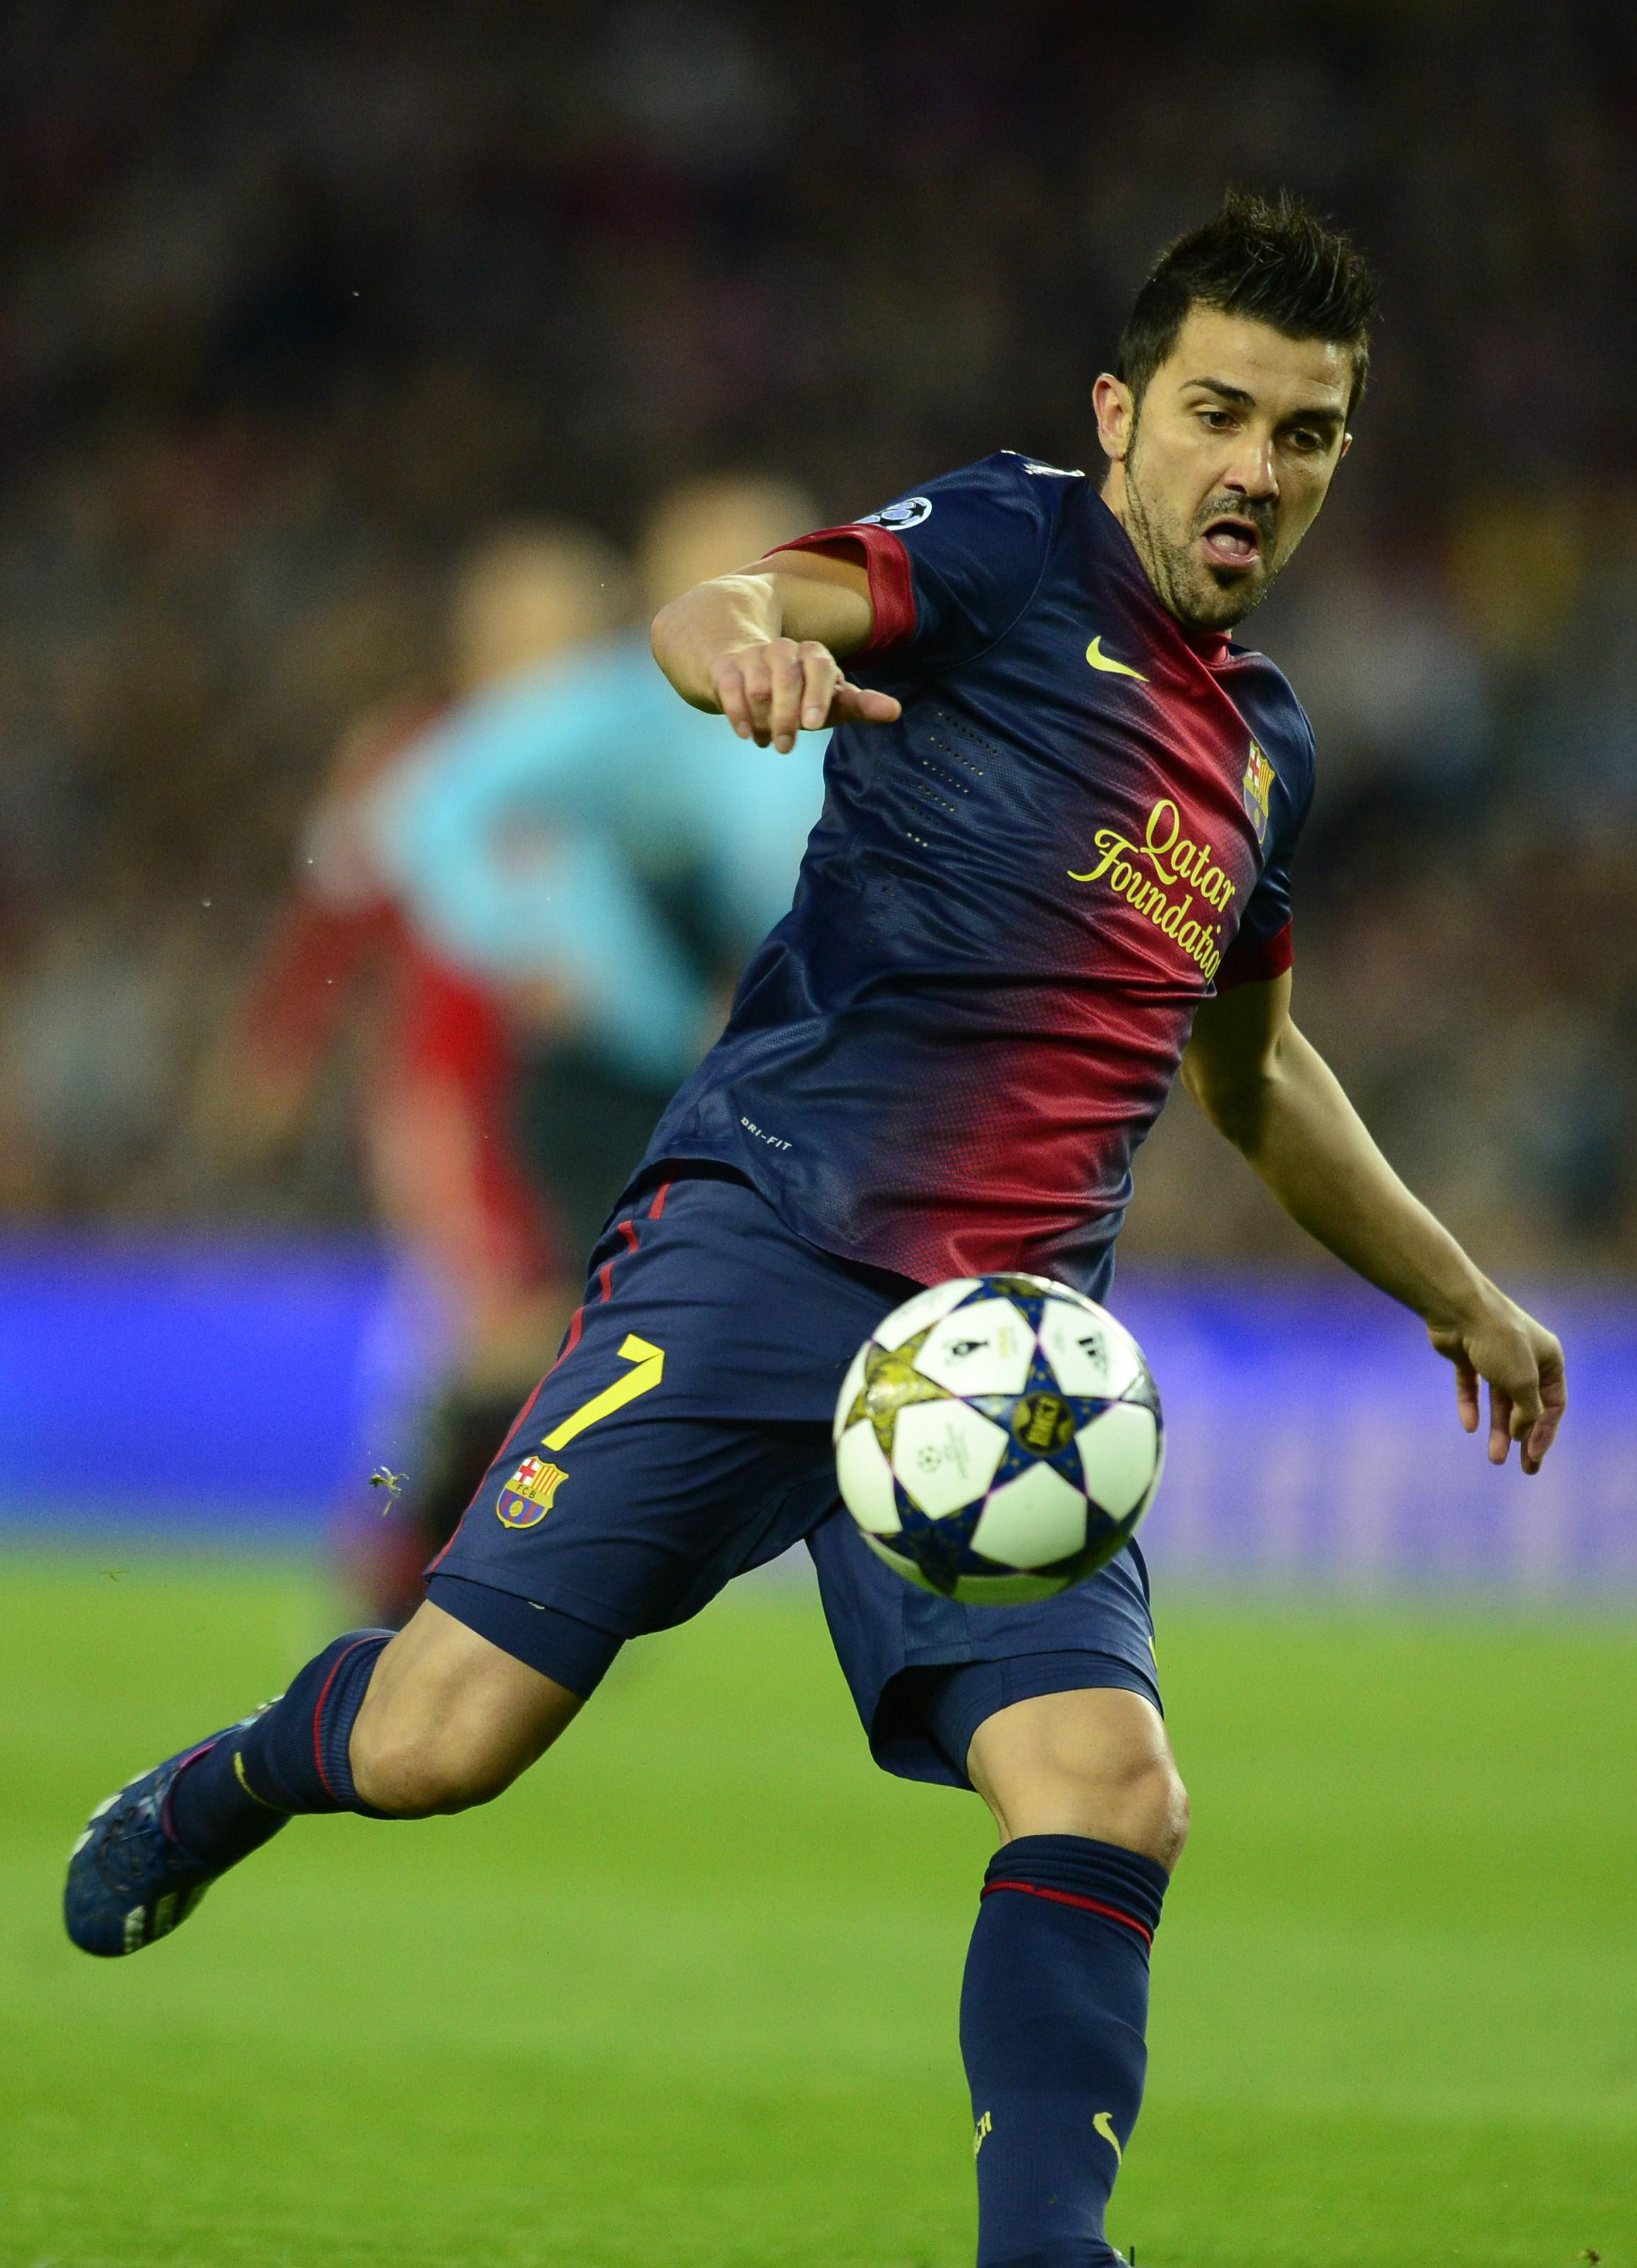 Villa was incredible for Barca and is still a force aged 35